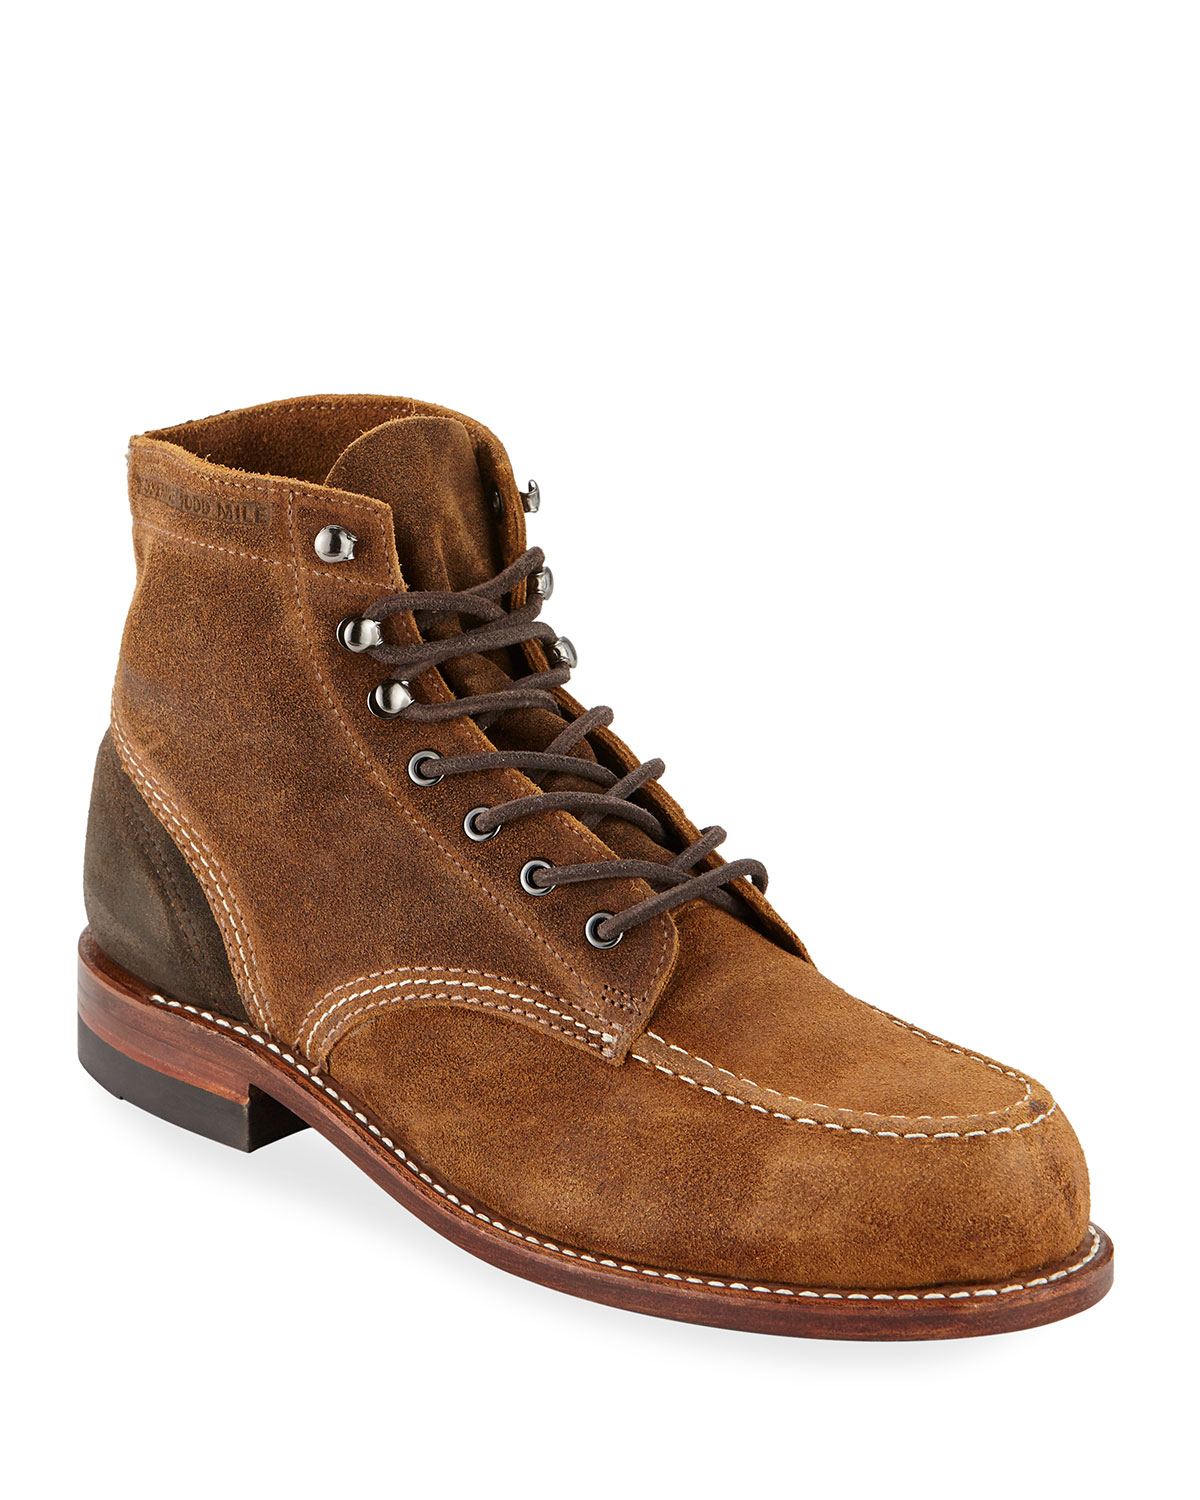 Men's 1000 Mile Rugged Waxy Suede Boots